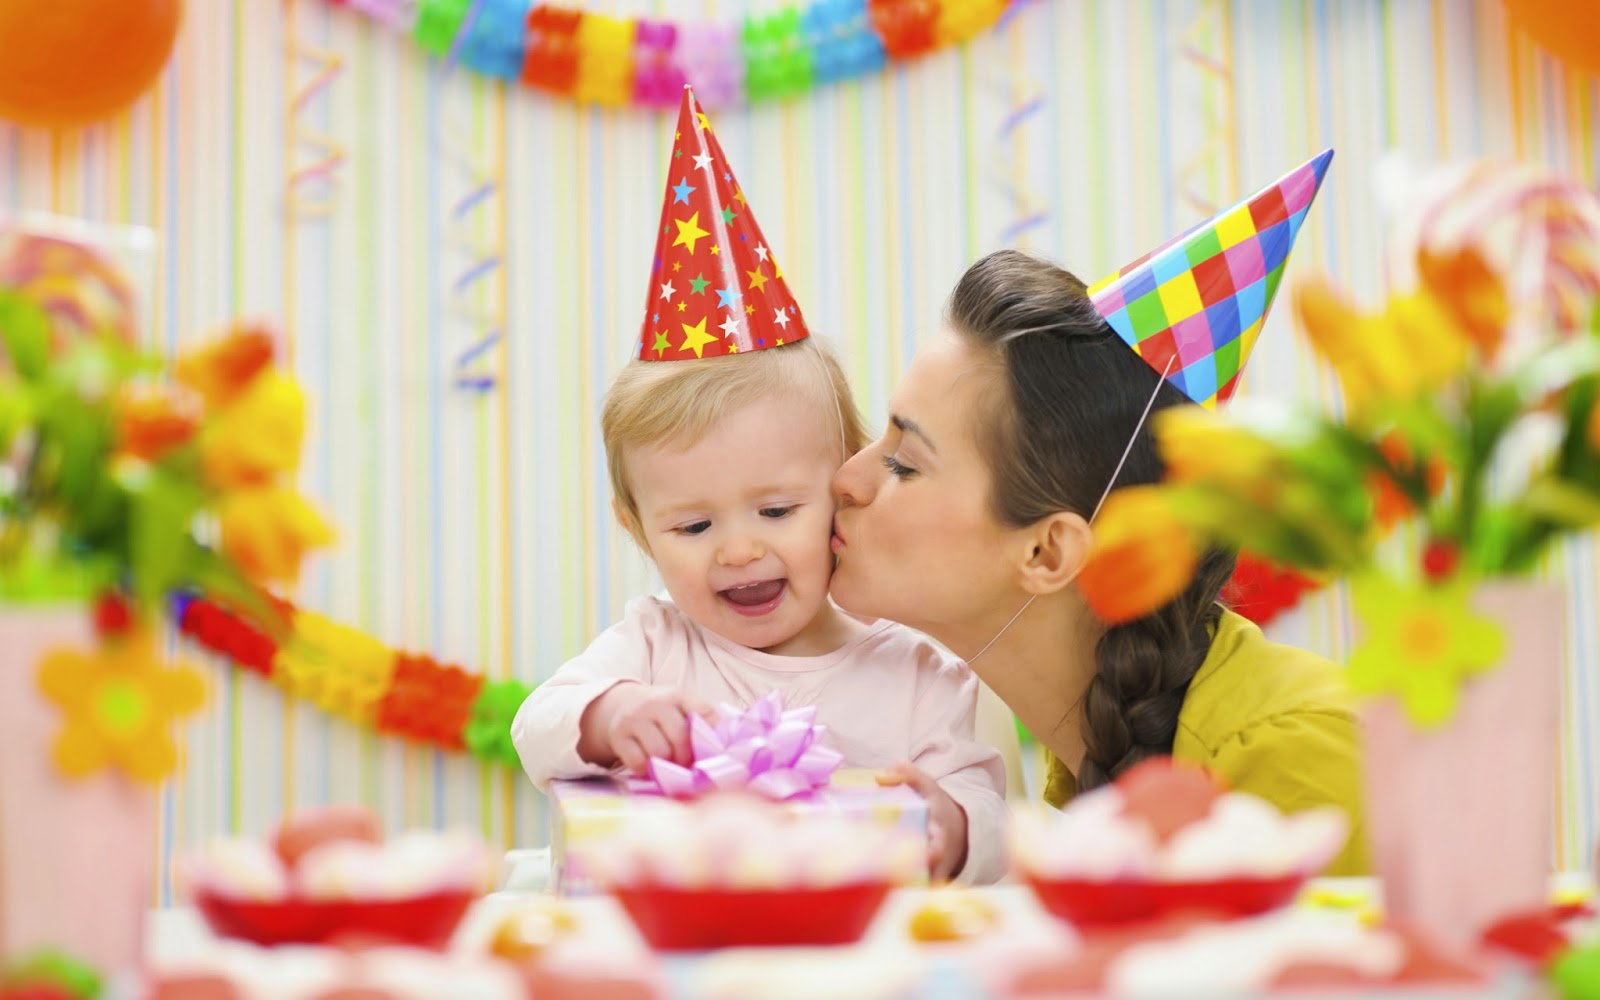 Happy Birthday Wishes Quotes And Images For Kids